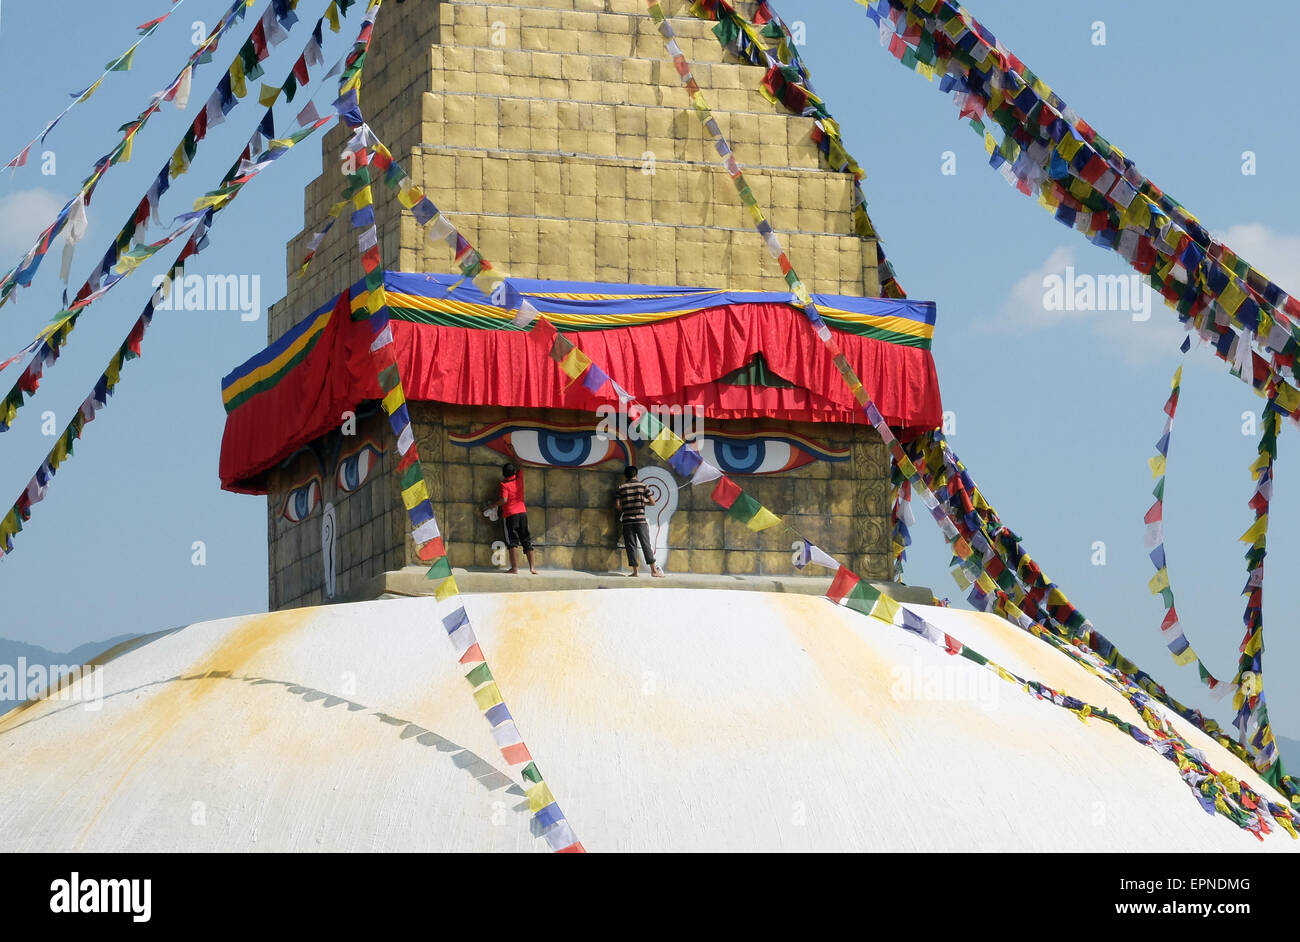 Men painting the eyes of the Stupa at Boudhanath, Kathmandu. - Stock Image